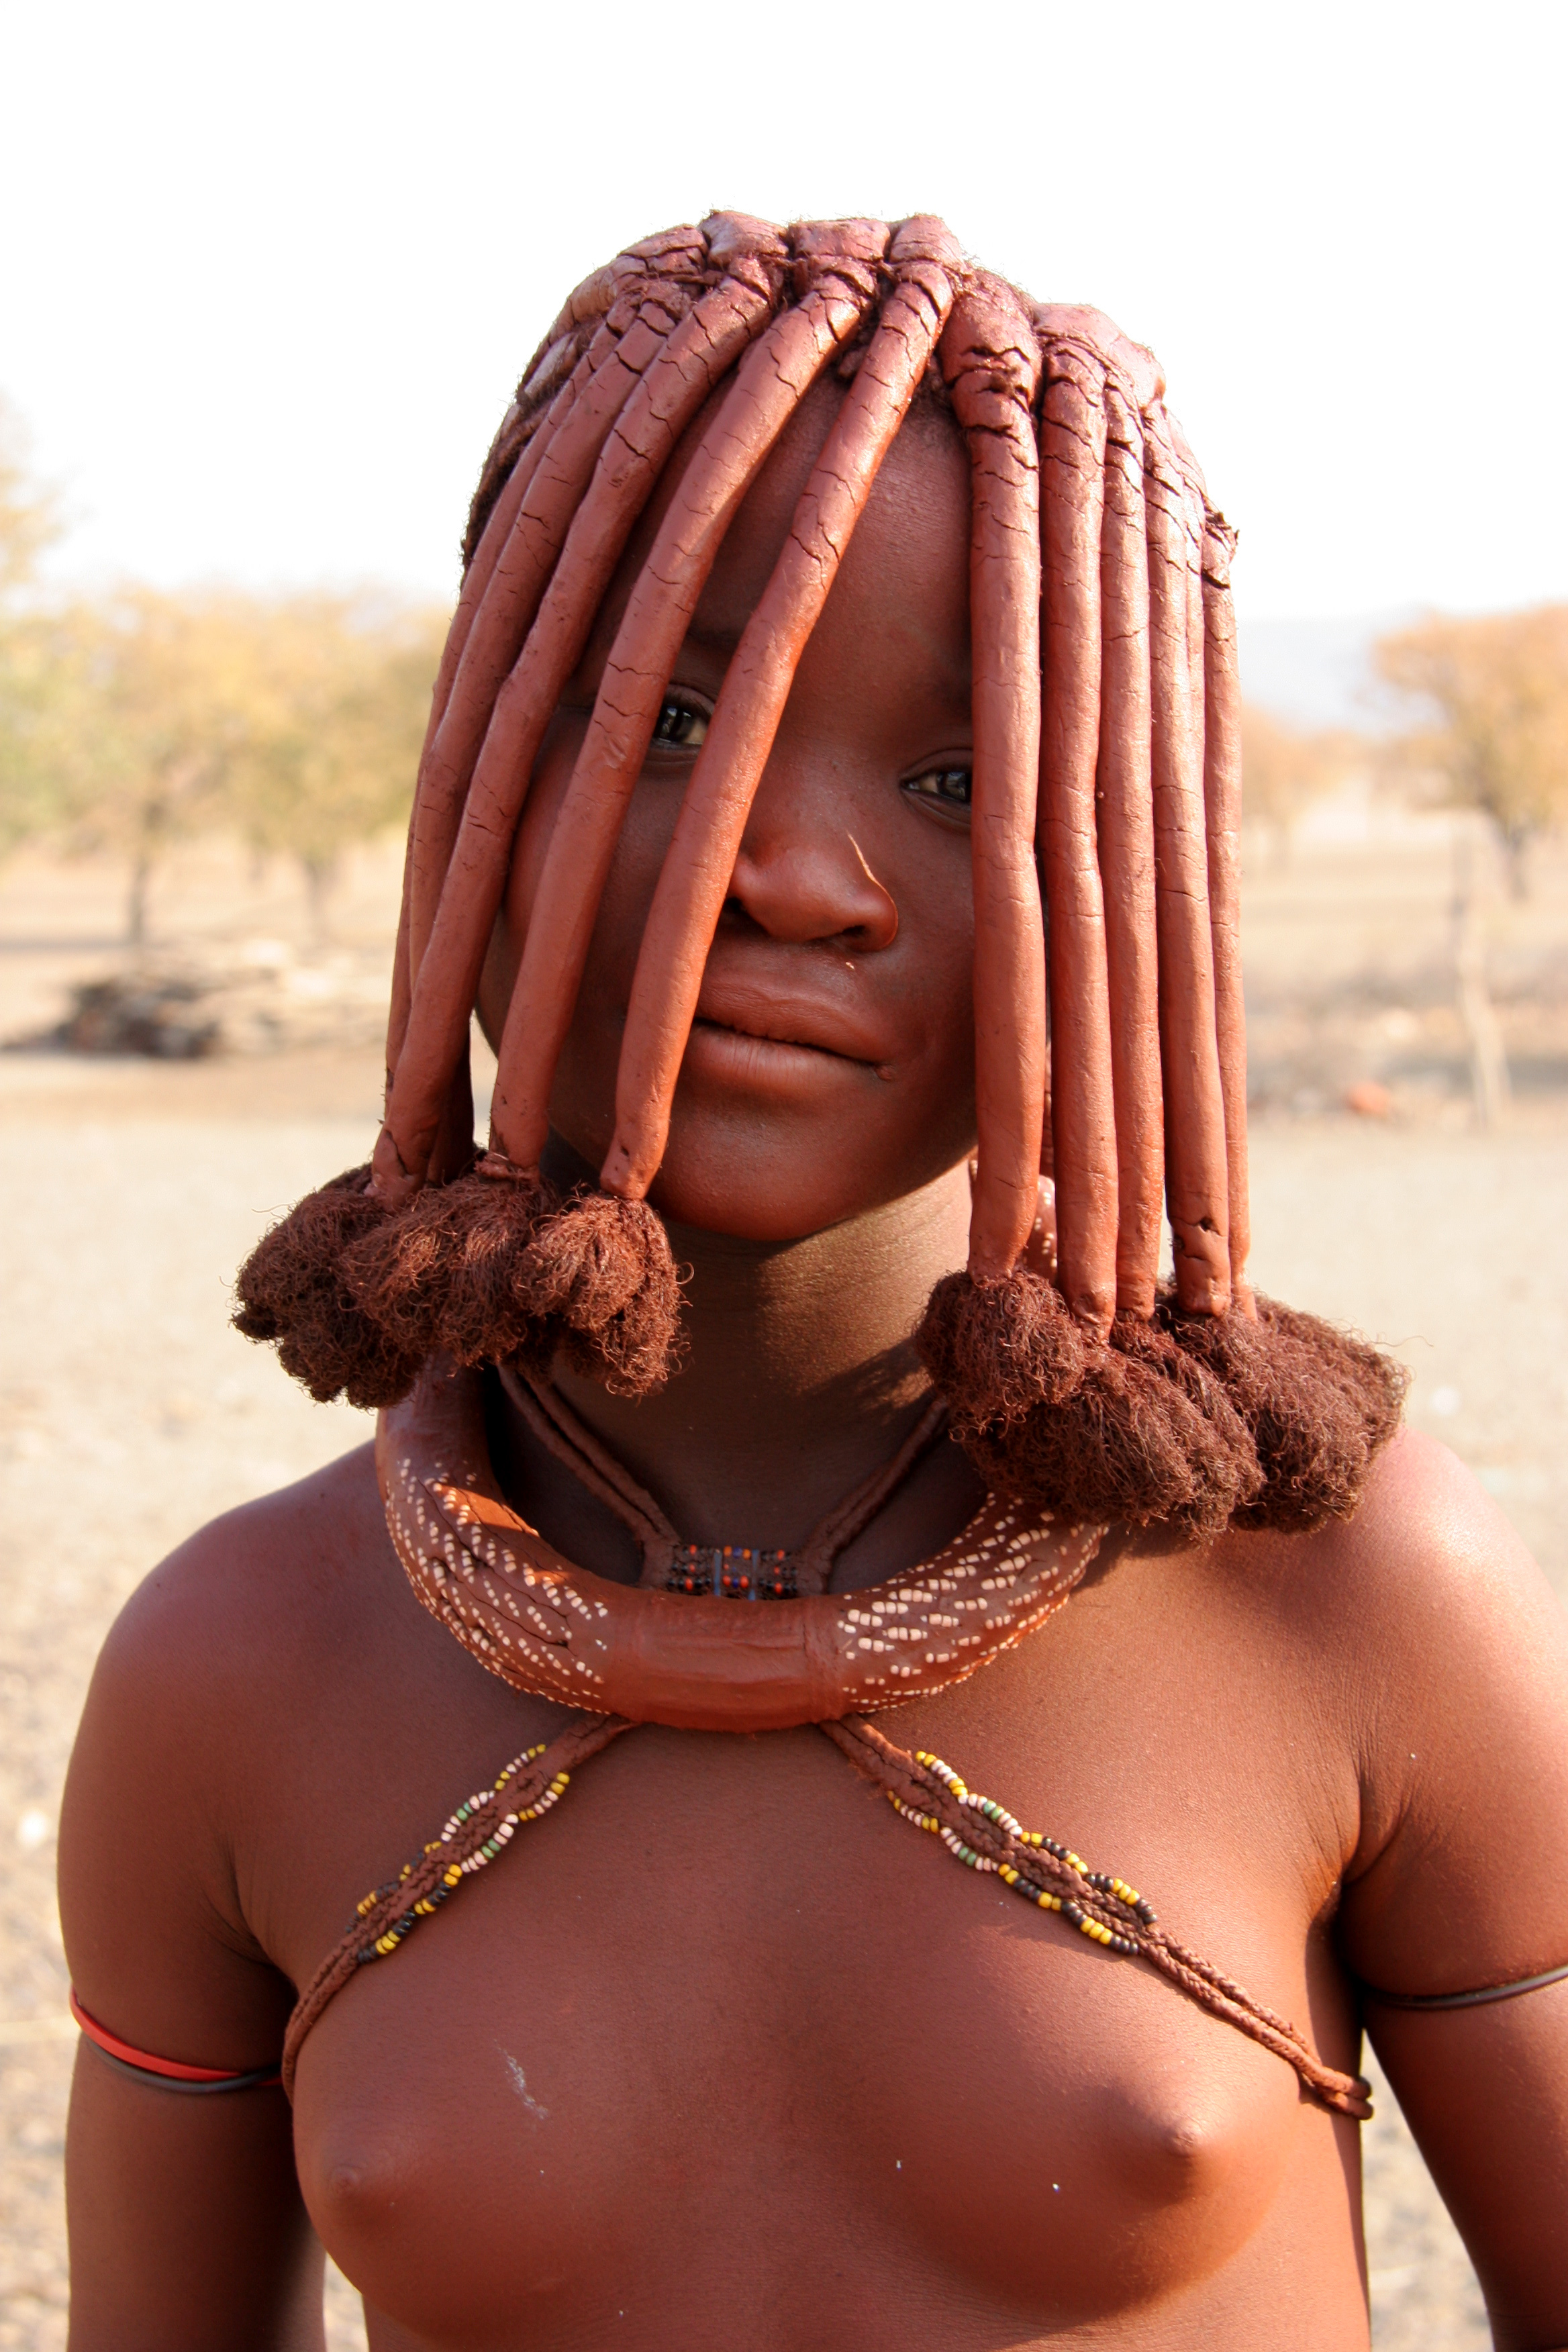 from Jase himba woman sex hot neked